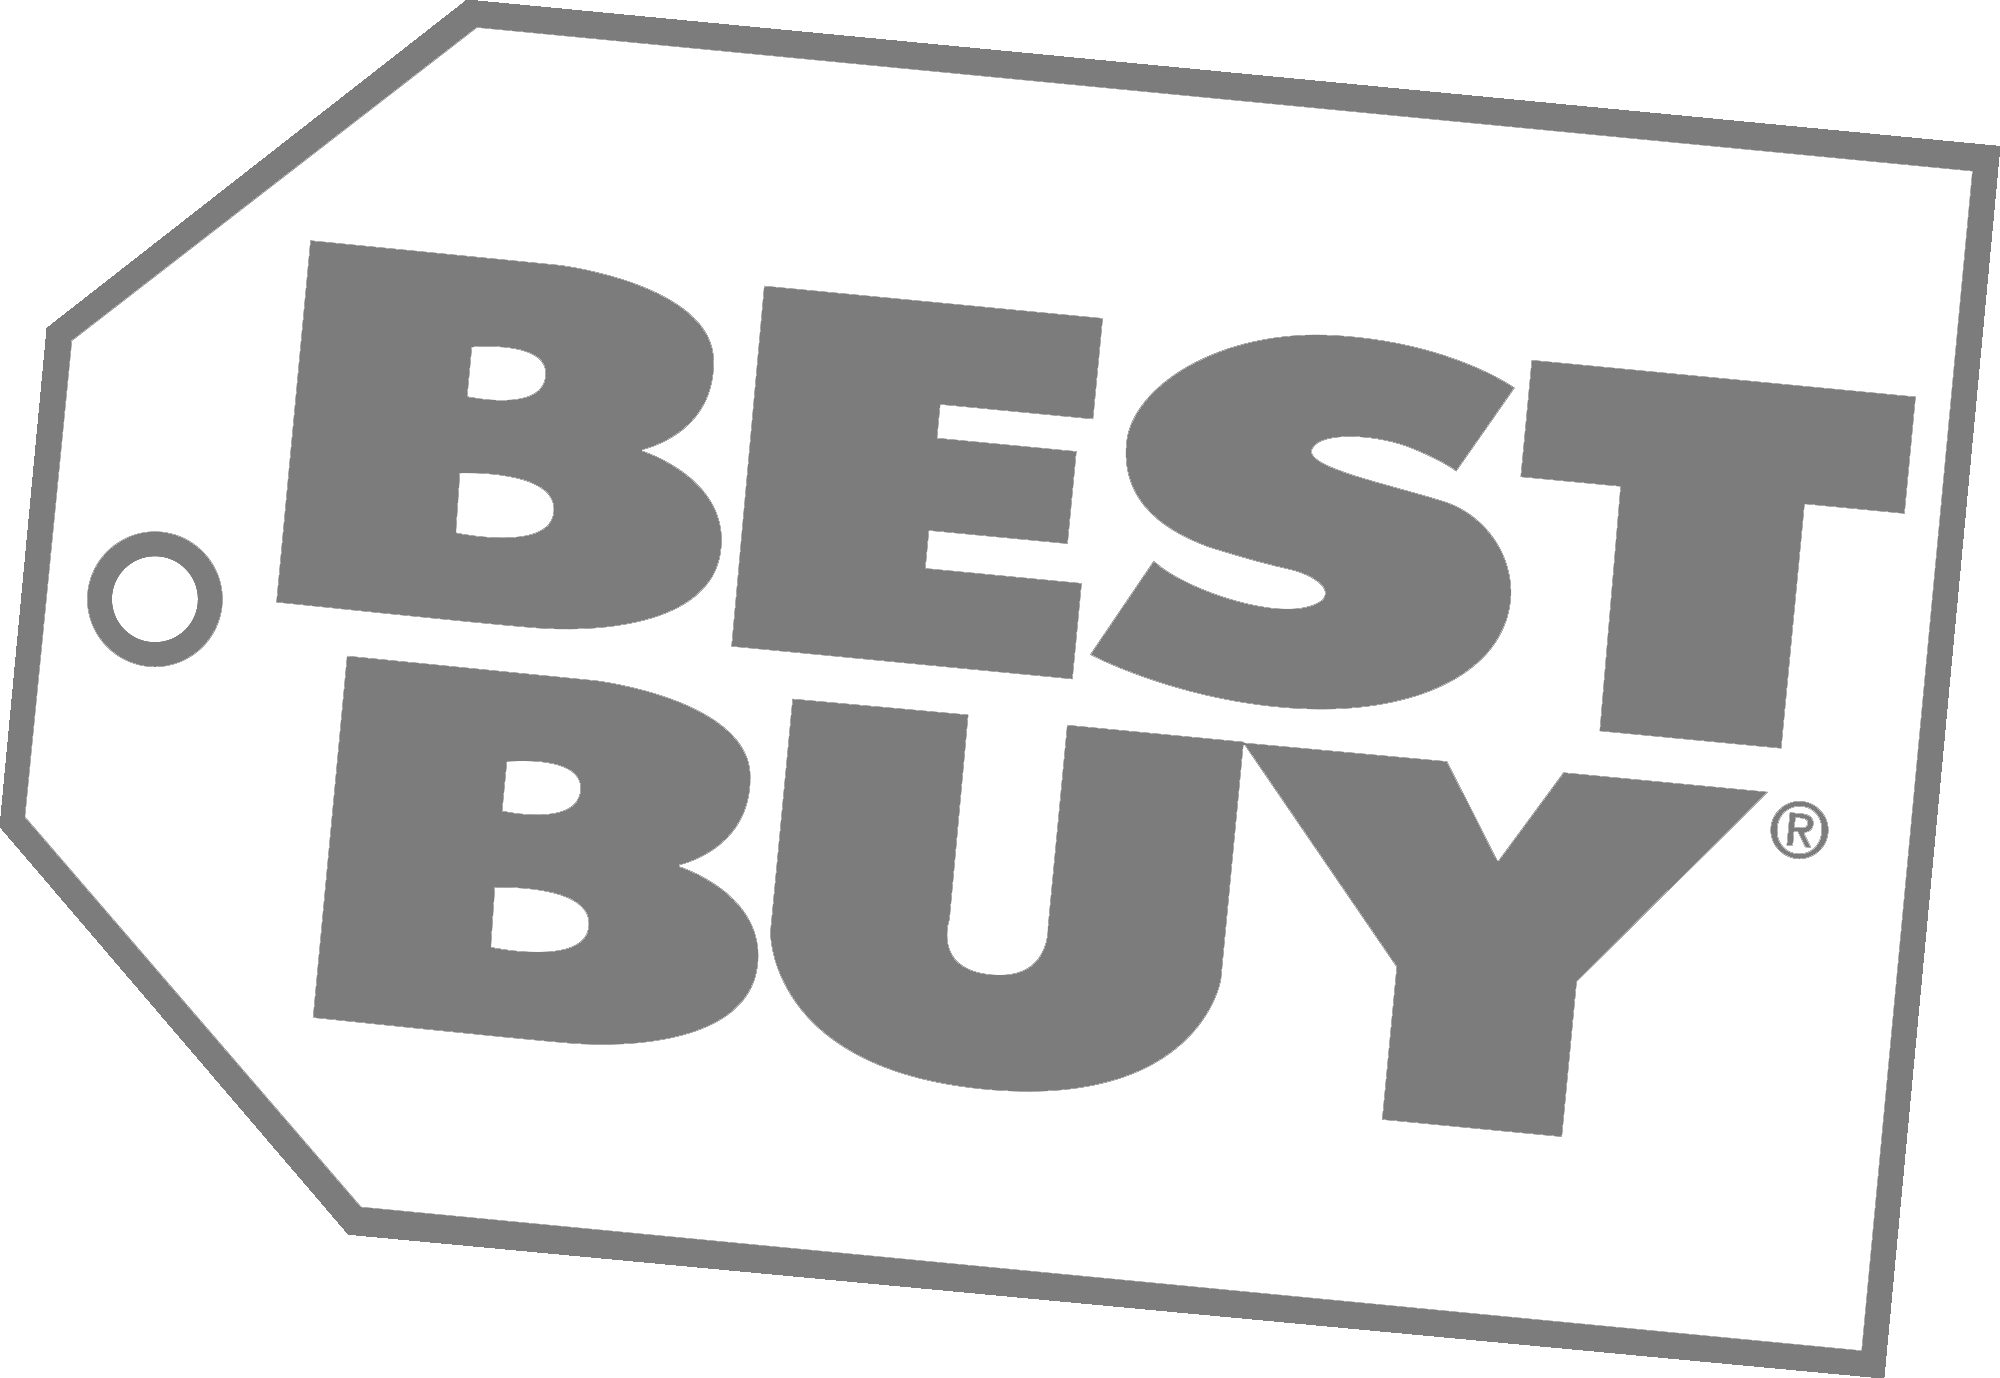 Best Buy's retail facilities management software